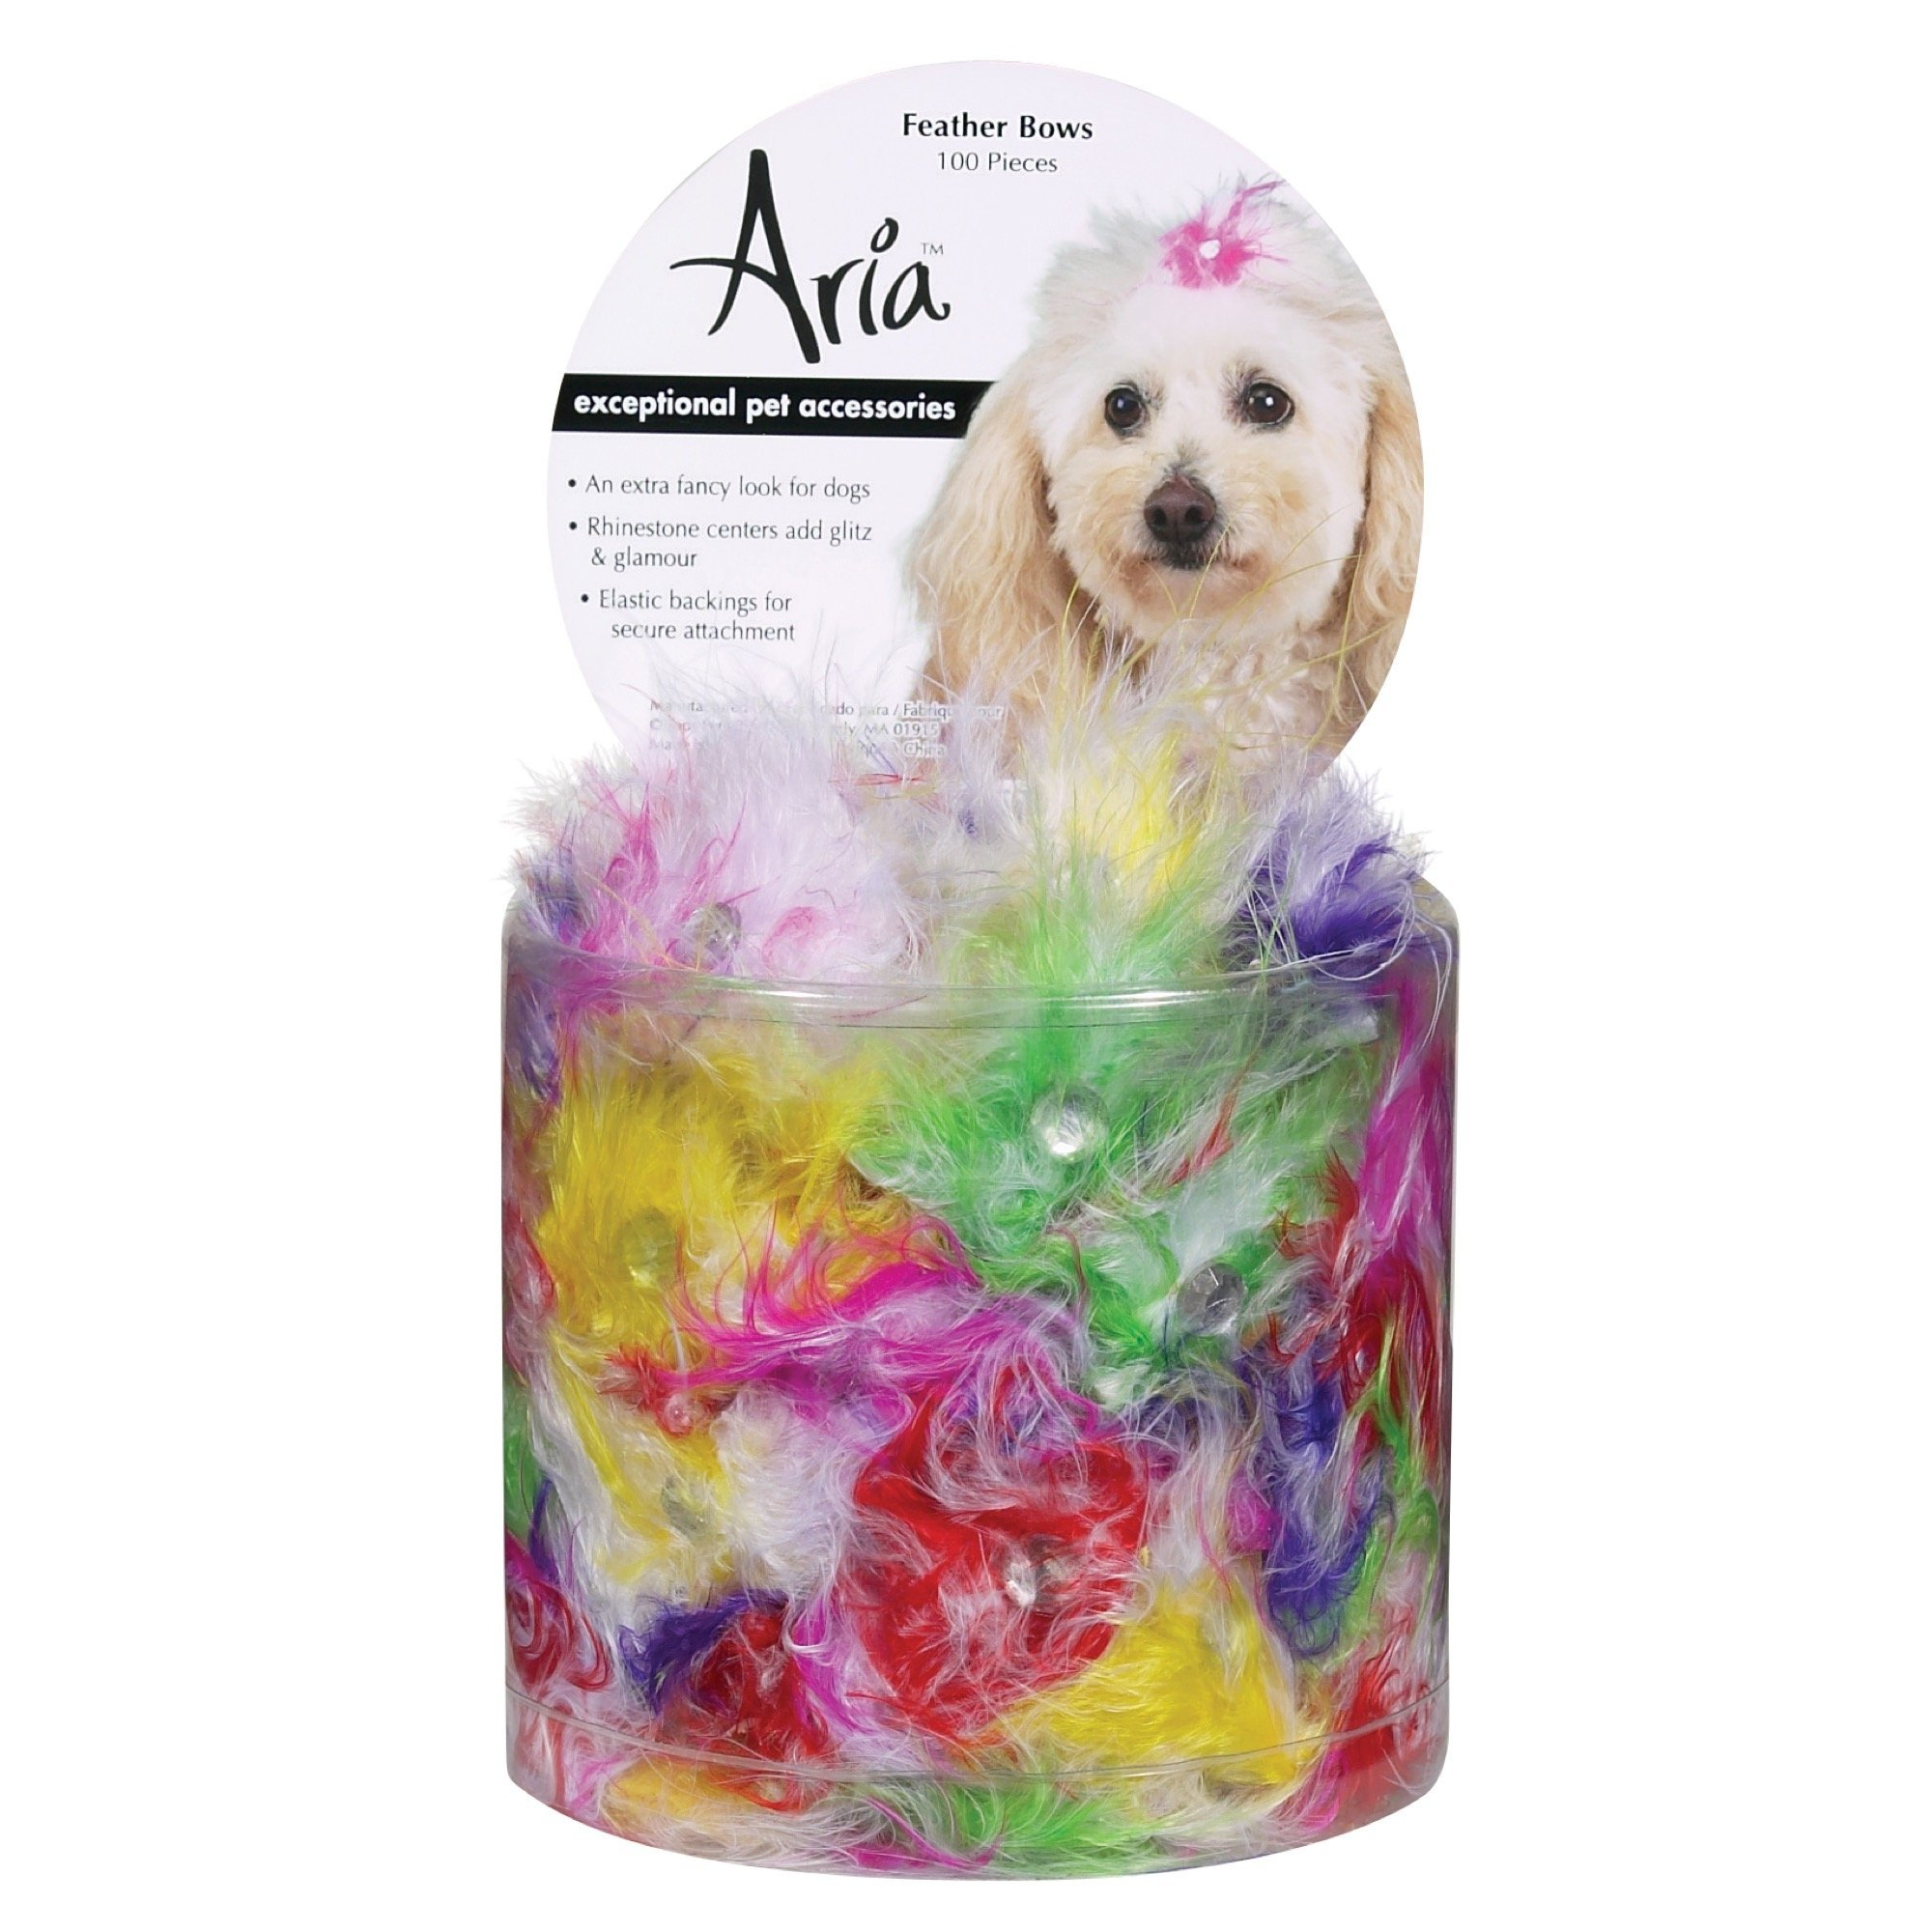 Aria Feather Bows for Dogs, 100-Piece Canisters by Aria